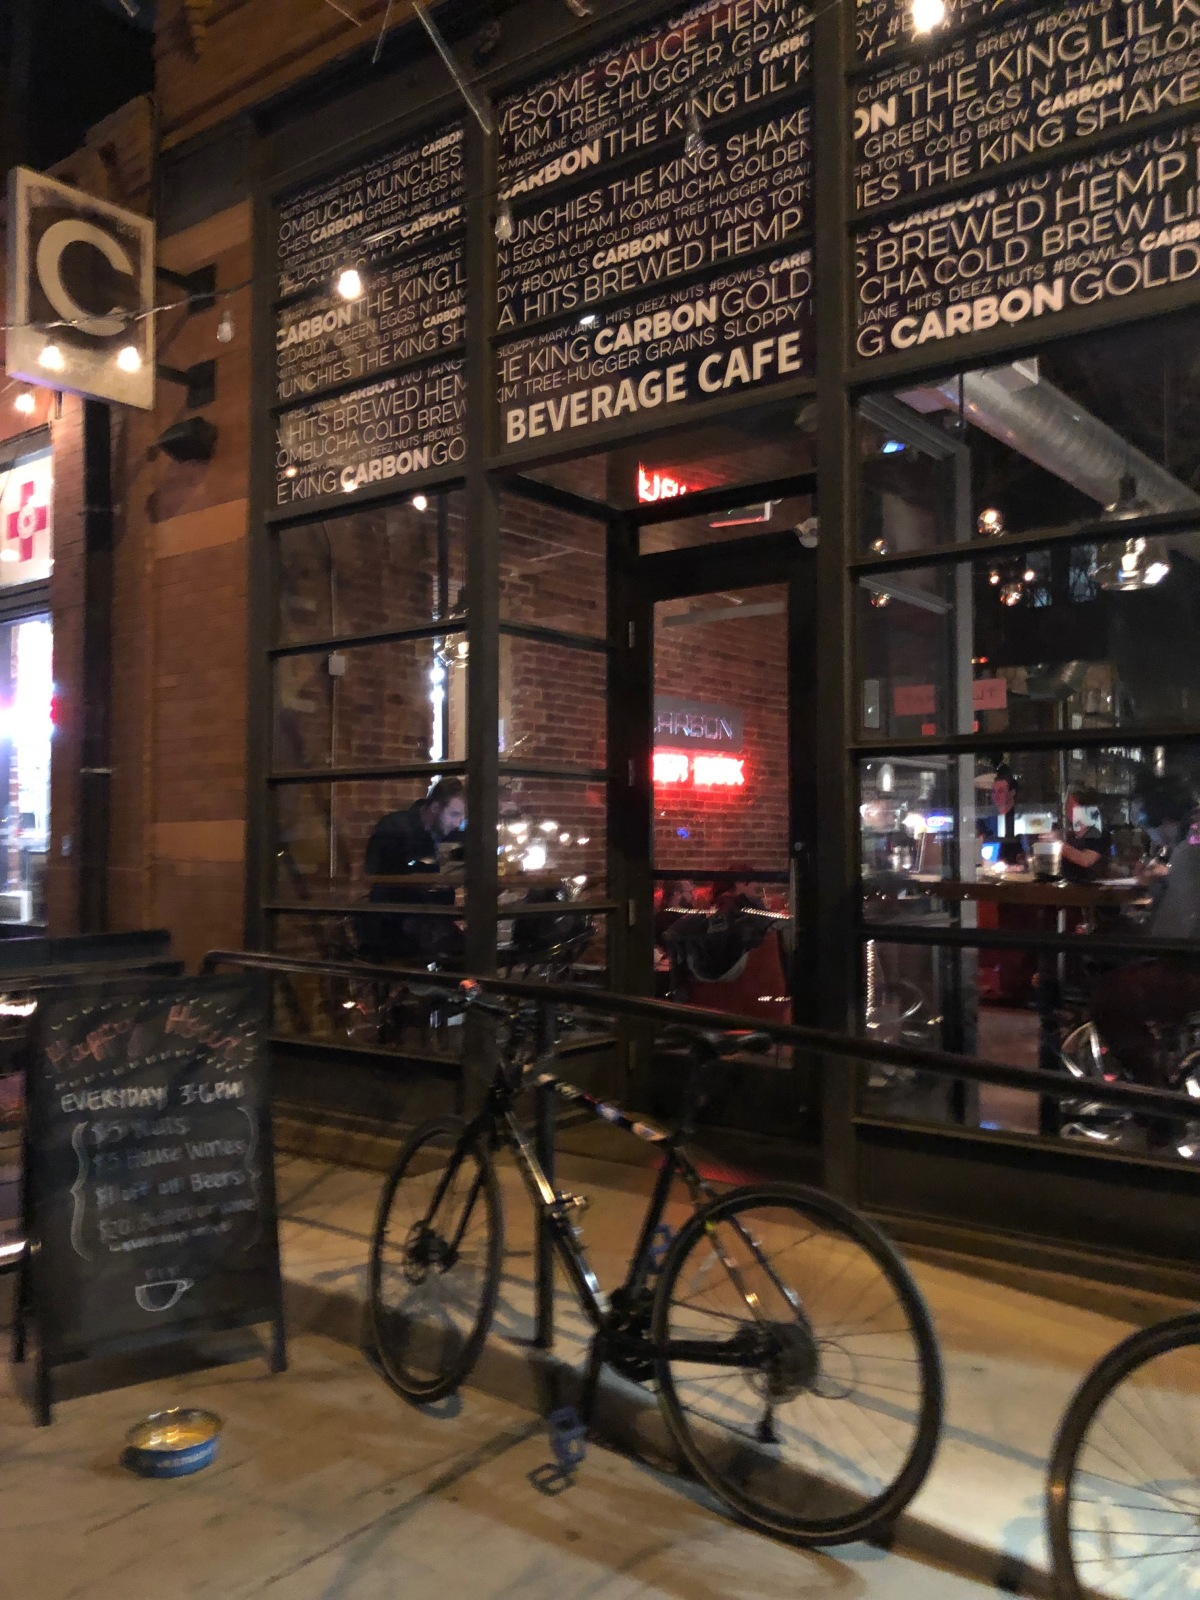 The Denver Café Chronicles—Carbon Café and Bar